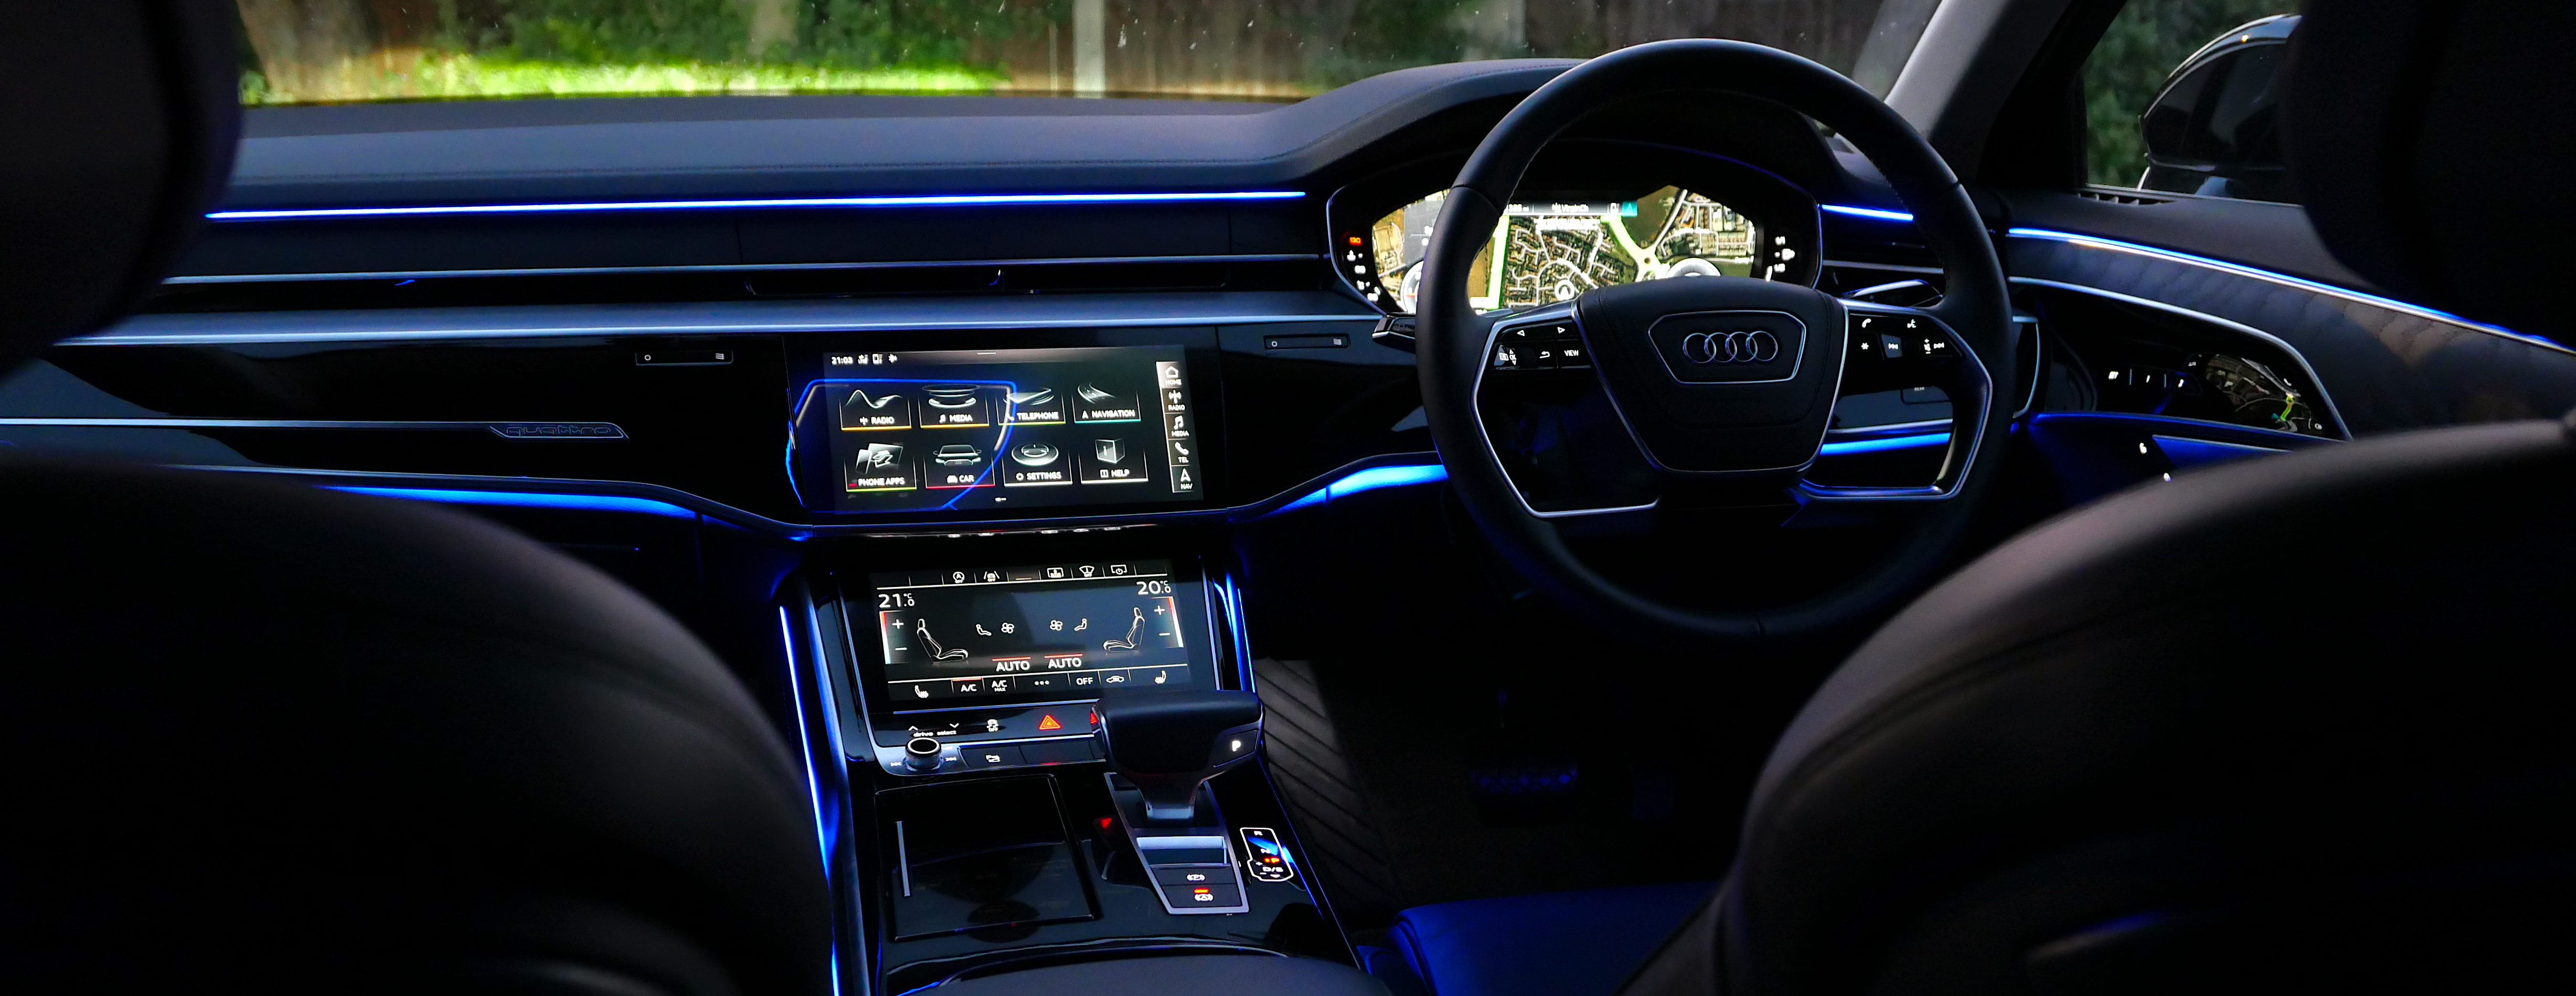 The dash of our Audi A8L